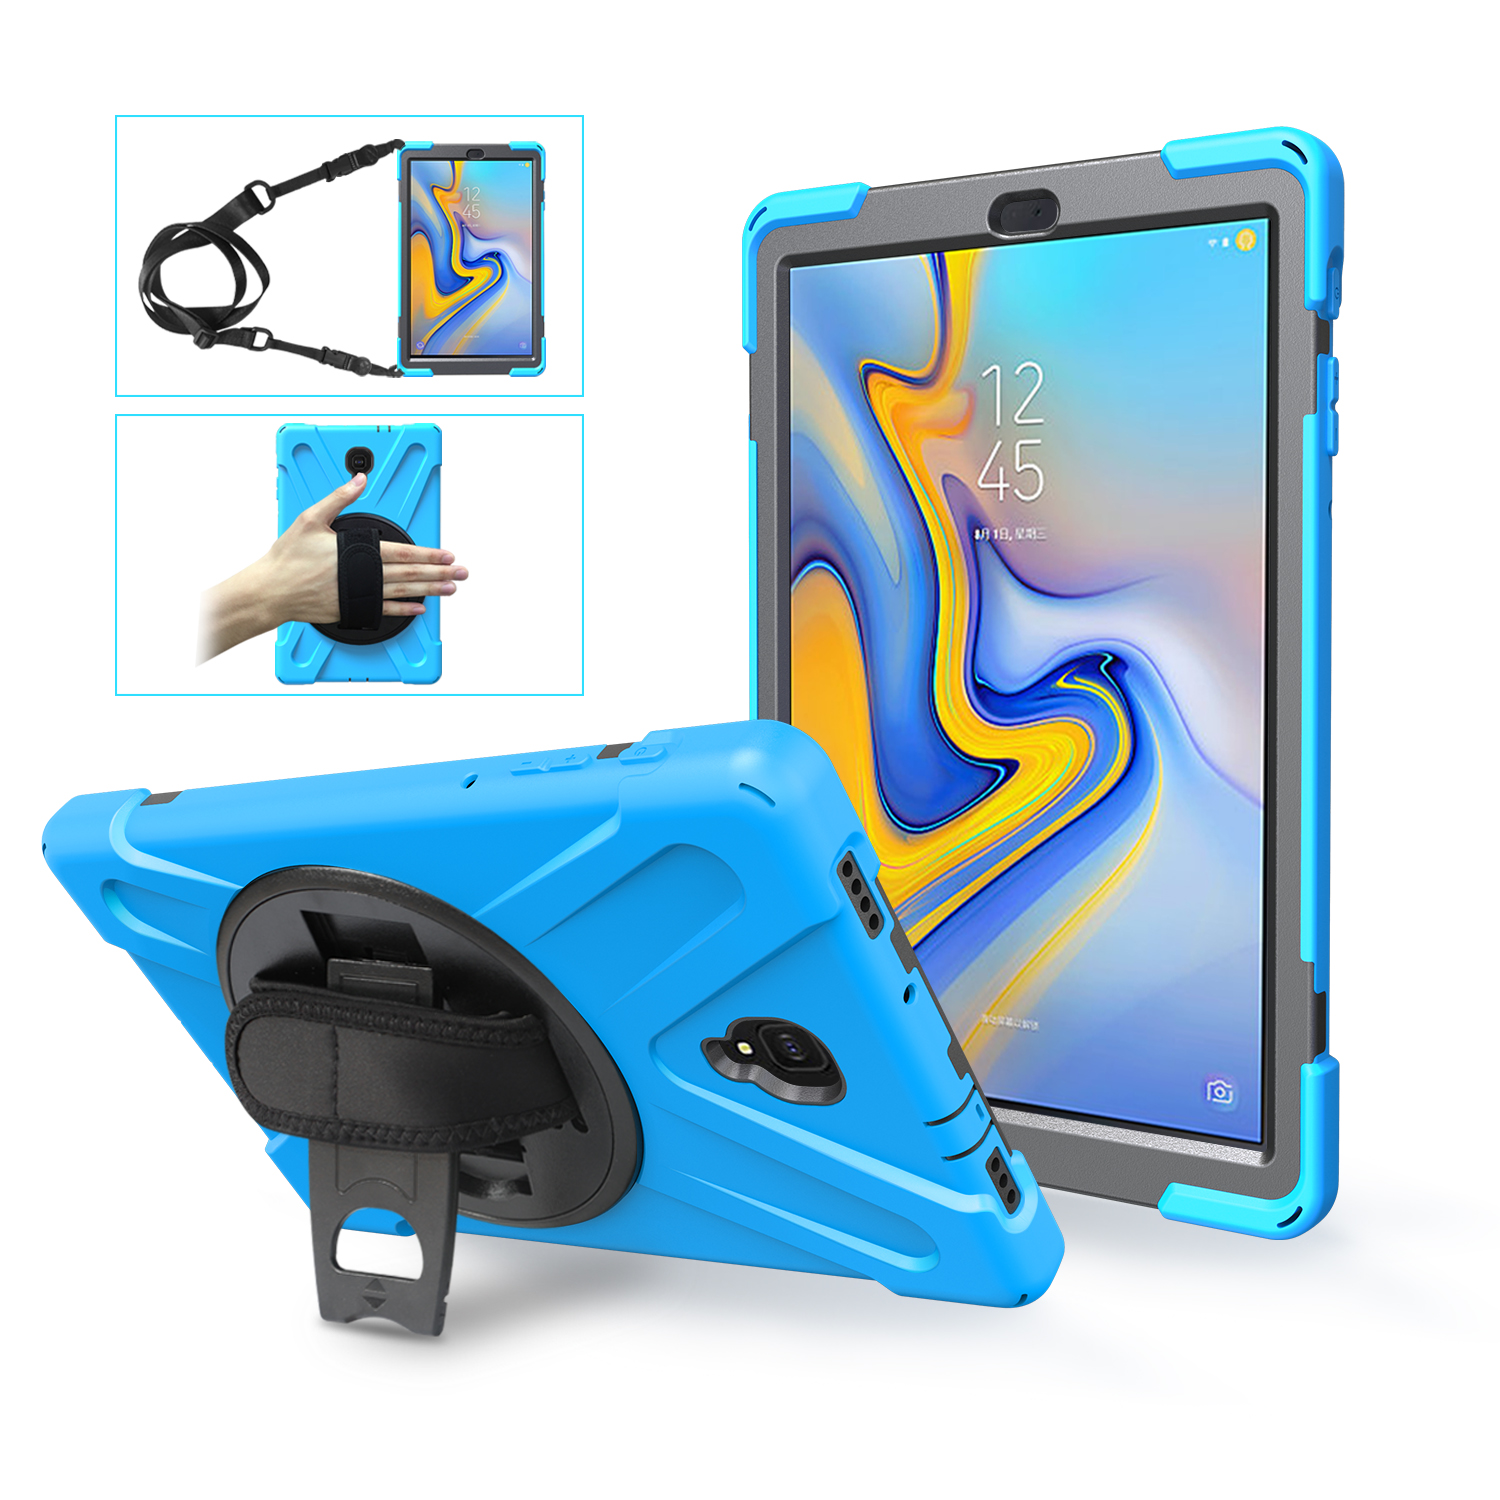 360 Rotation Hand Strap & Kickstand Silicone Defender Cover For Samsung Galaxy Tab A 10.5 T590 T595 T597 2018 Release Kids Case